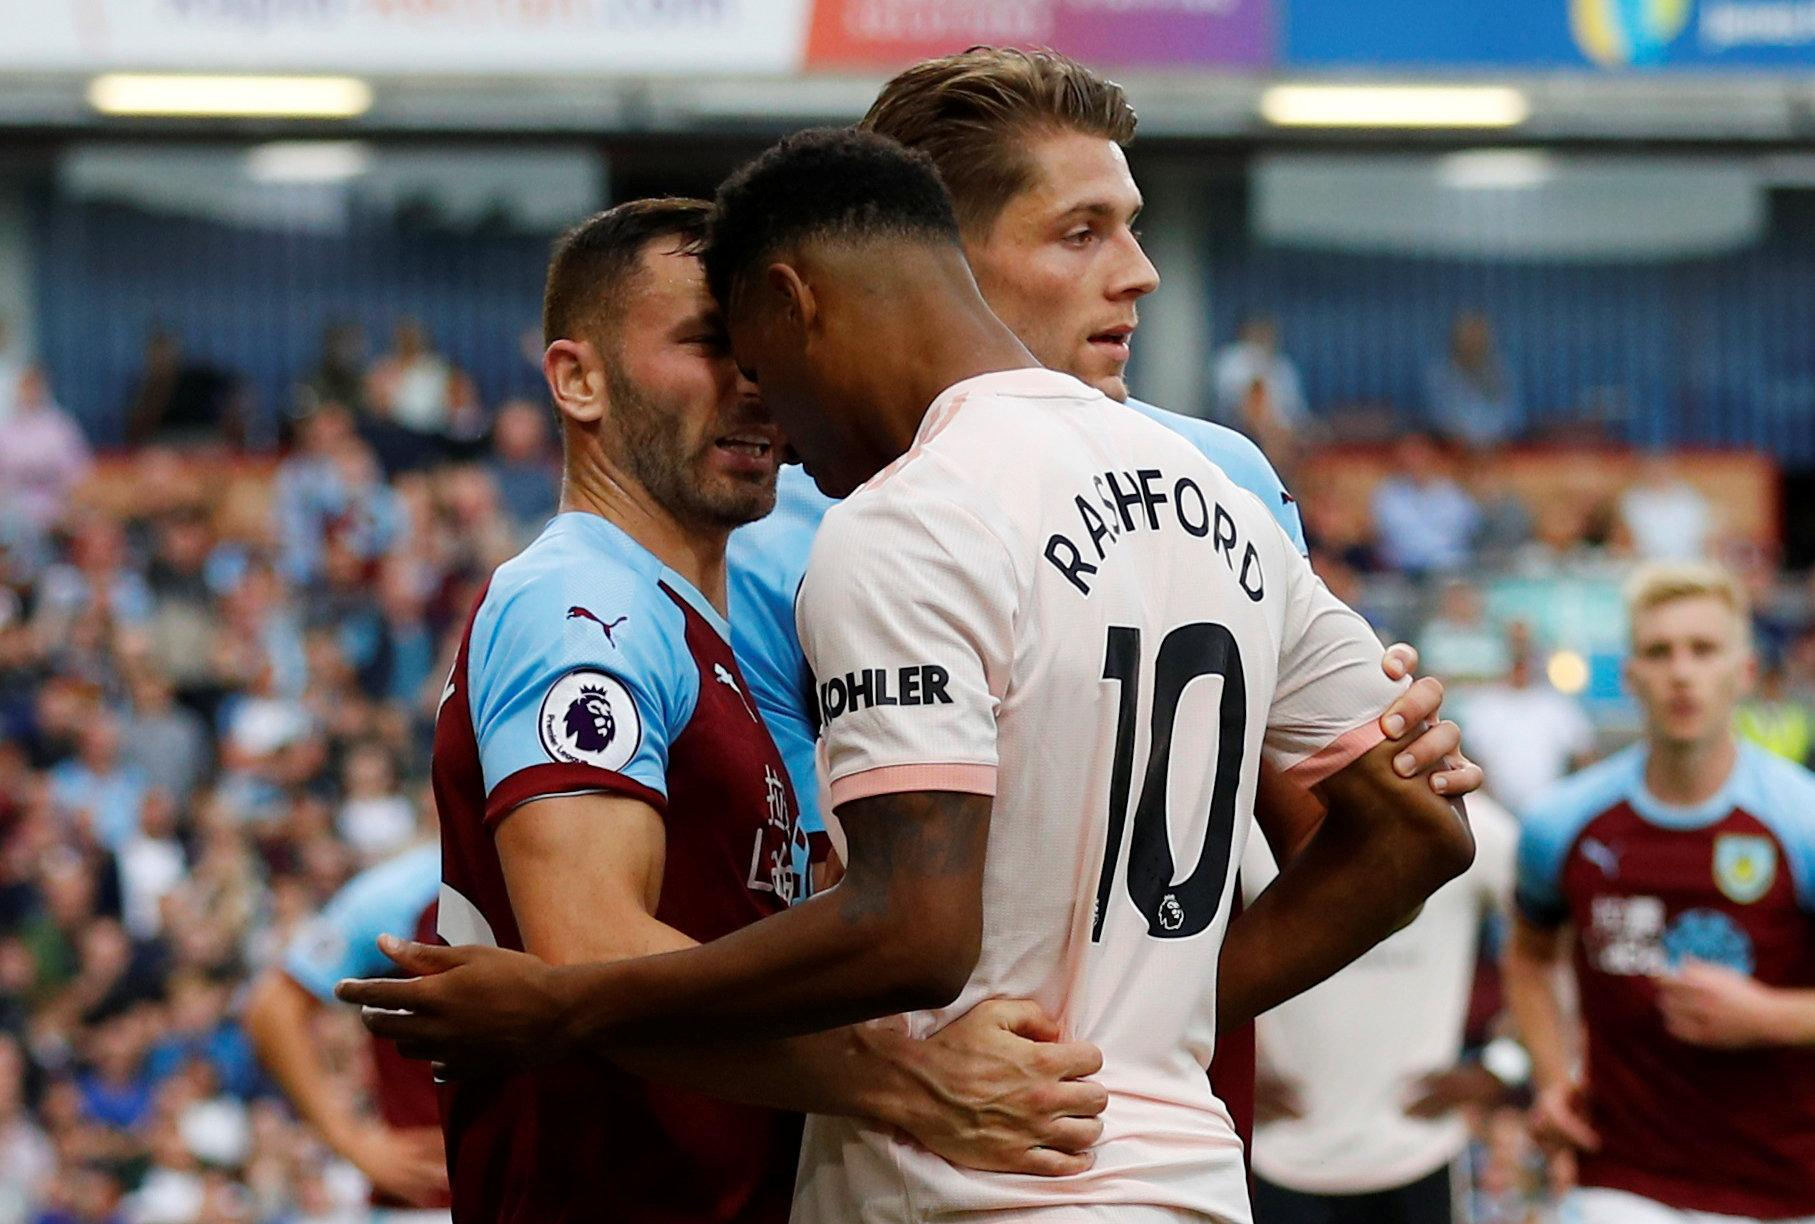 Rashford was given his marching orders after appearing to headbutt Bardsley